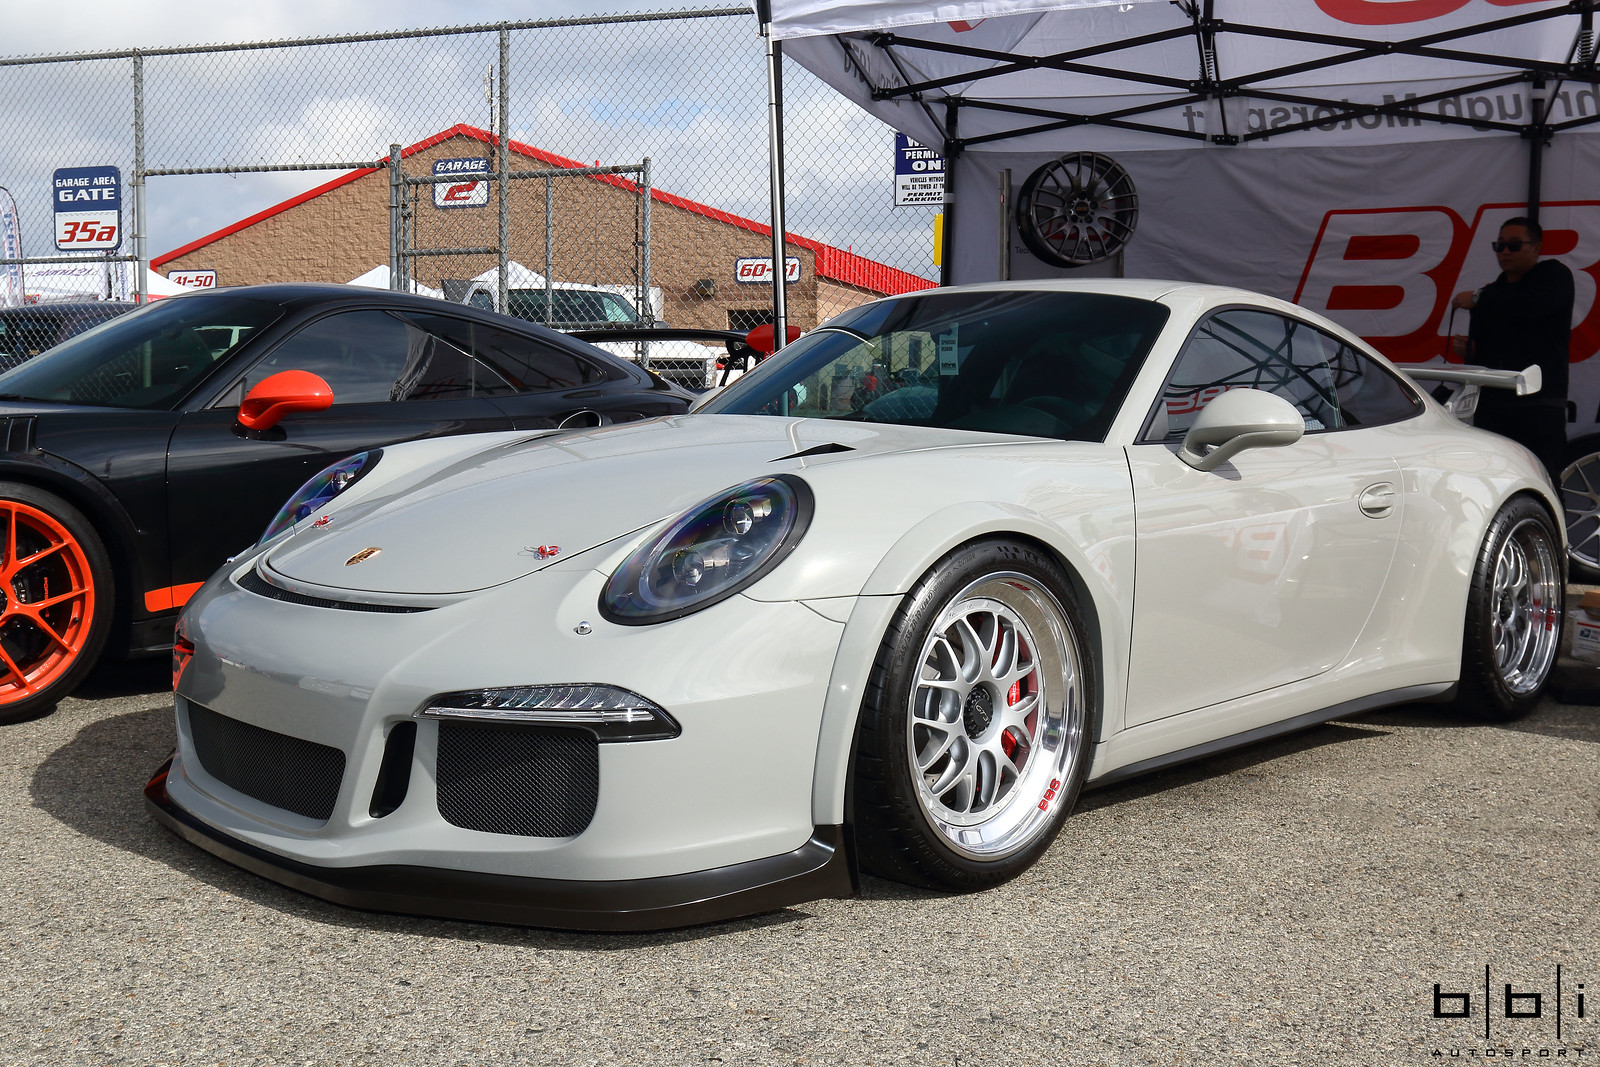 Fashion Grey Porsche 991 GT3 W BBS Motorsport E07 Amp BBi